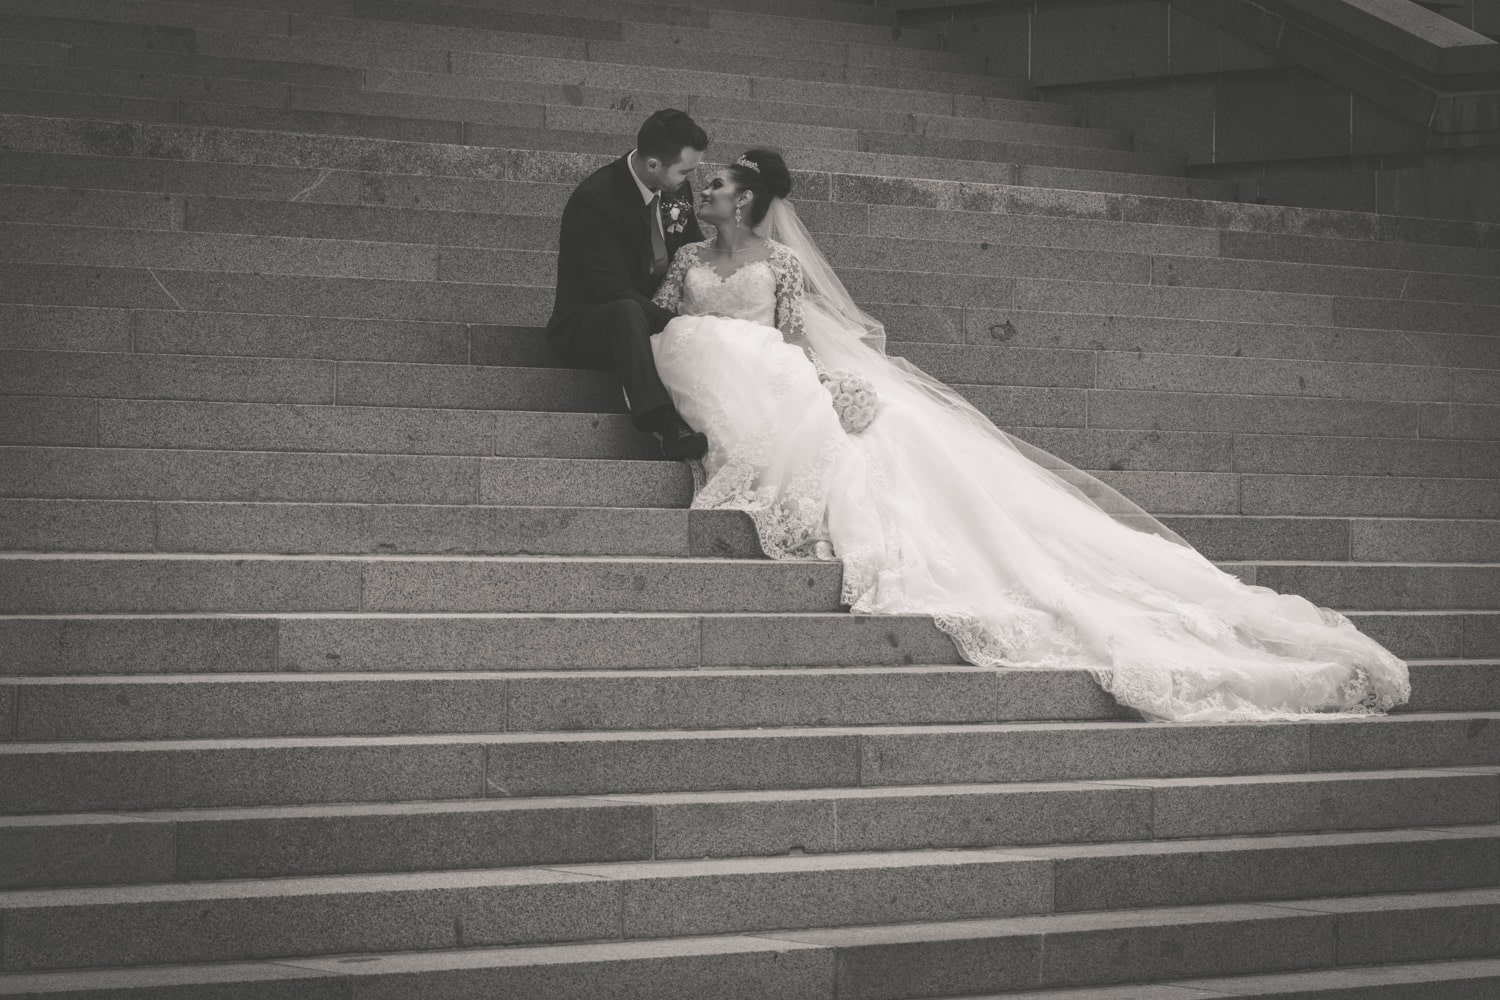 Bride and groom sitting on steps with brides train trailing down.jpg